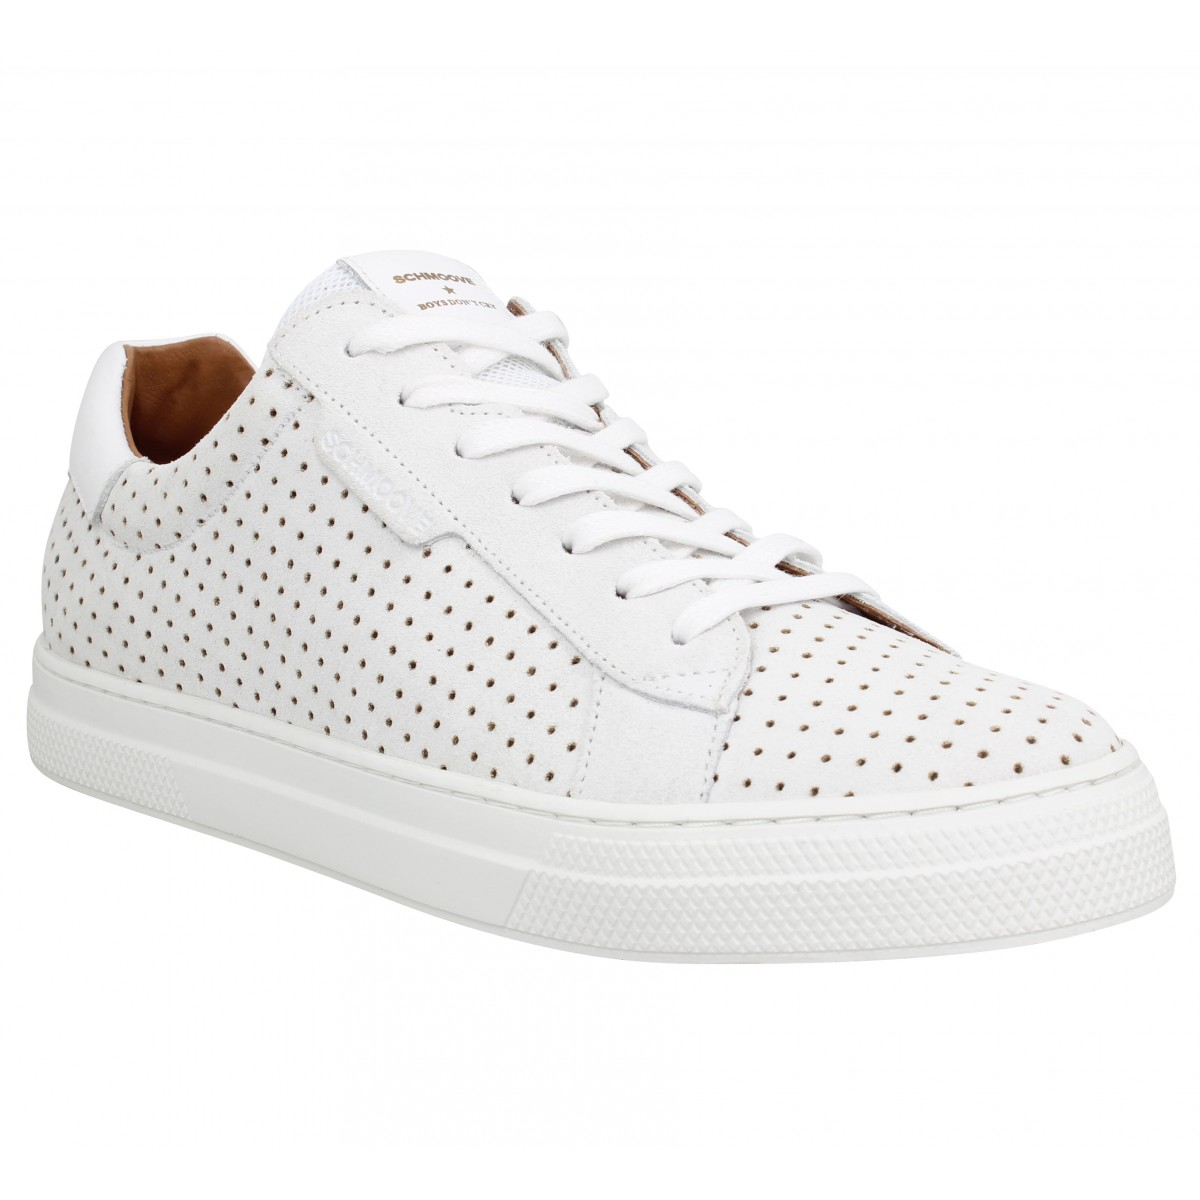 Baskets SCHMOOVE Spark Clay punch suede Homme Blanc